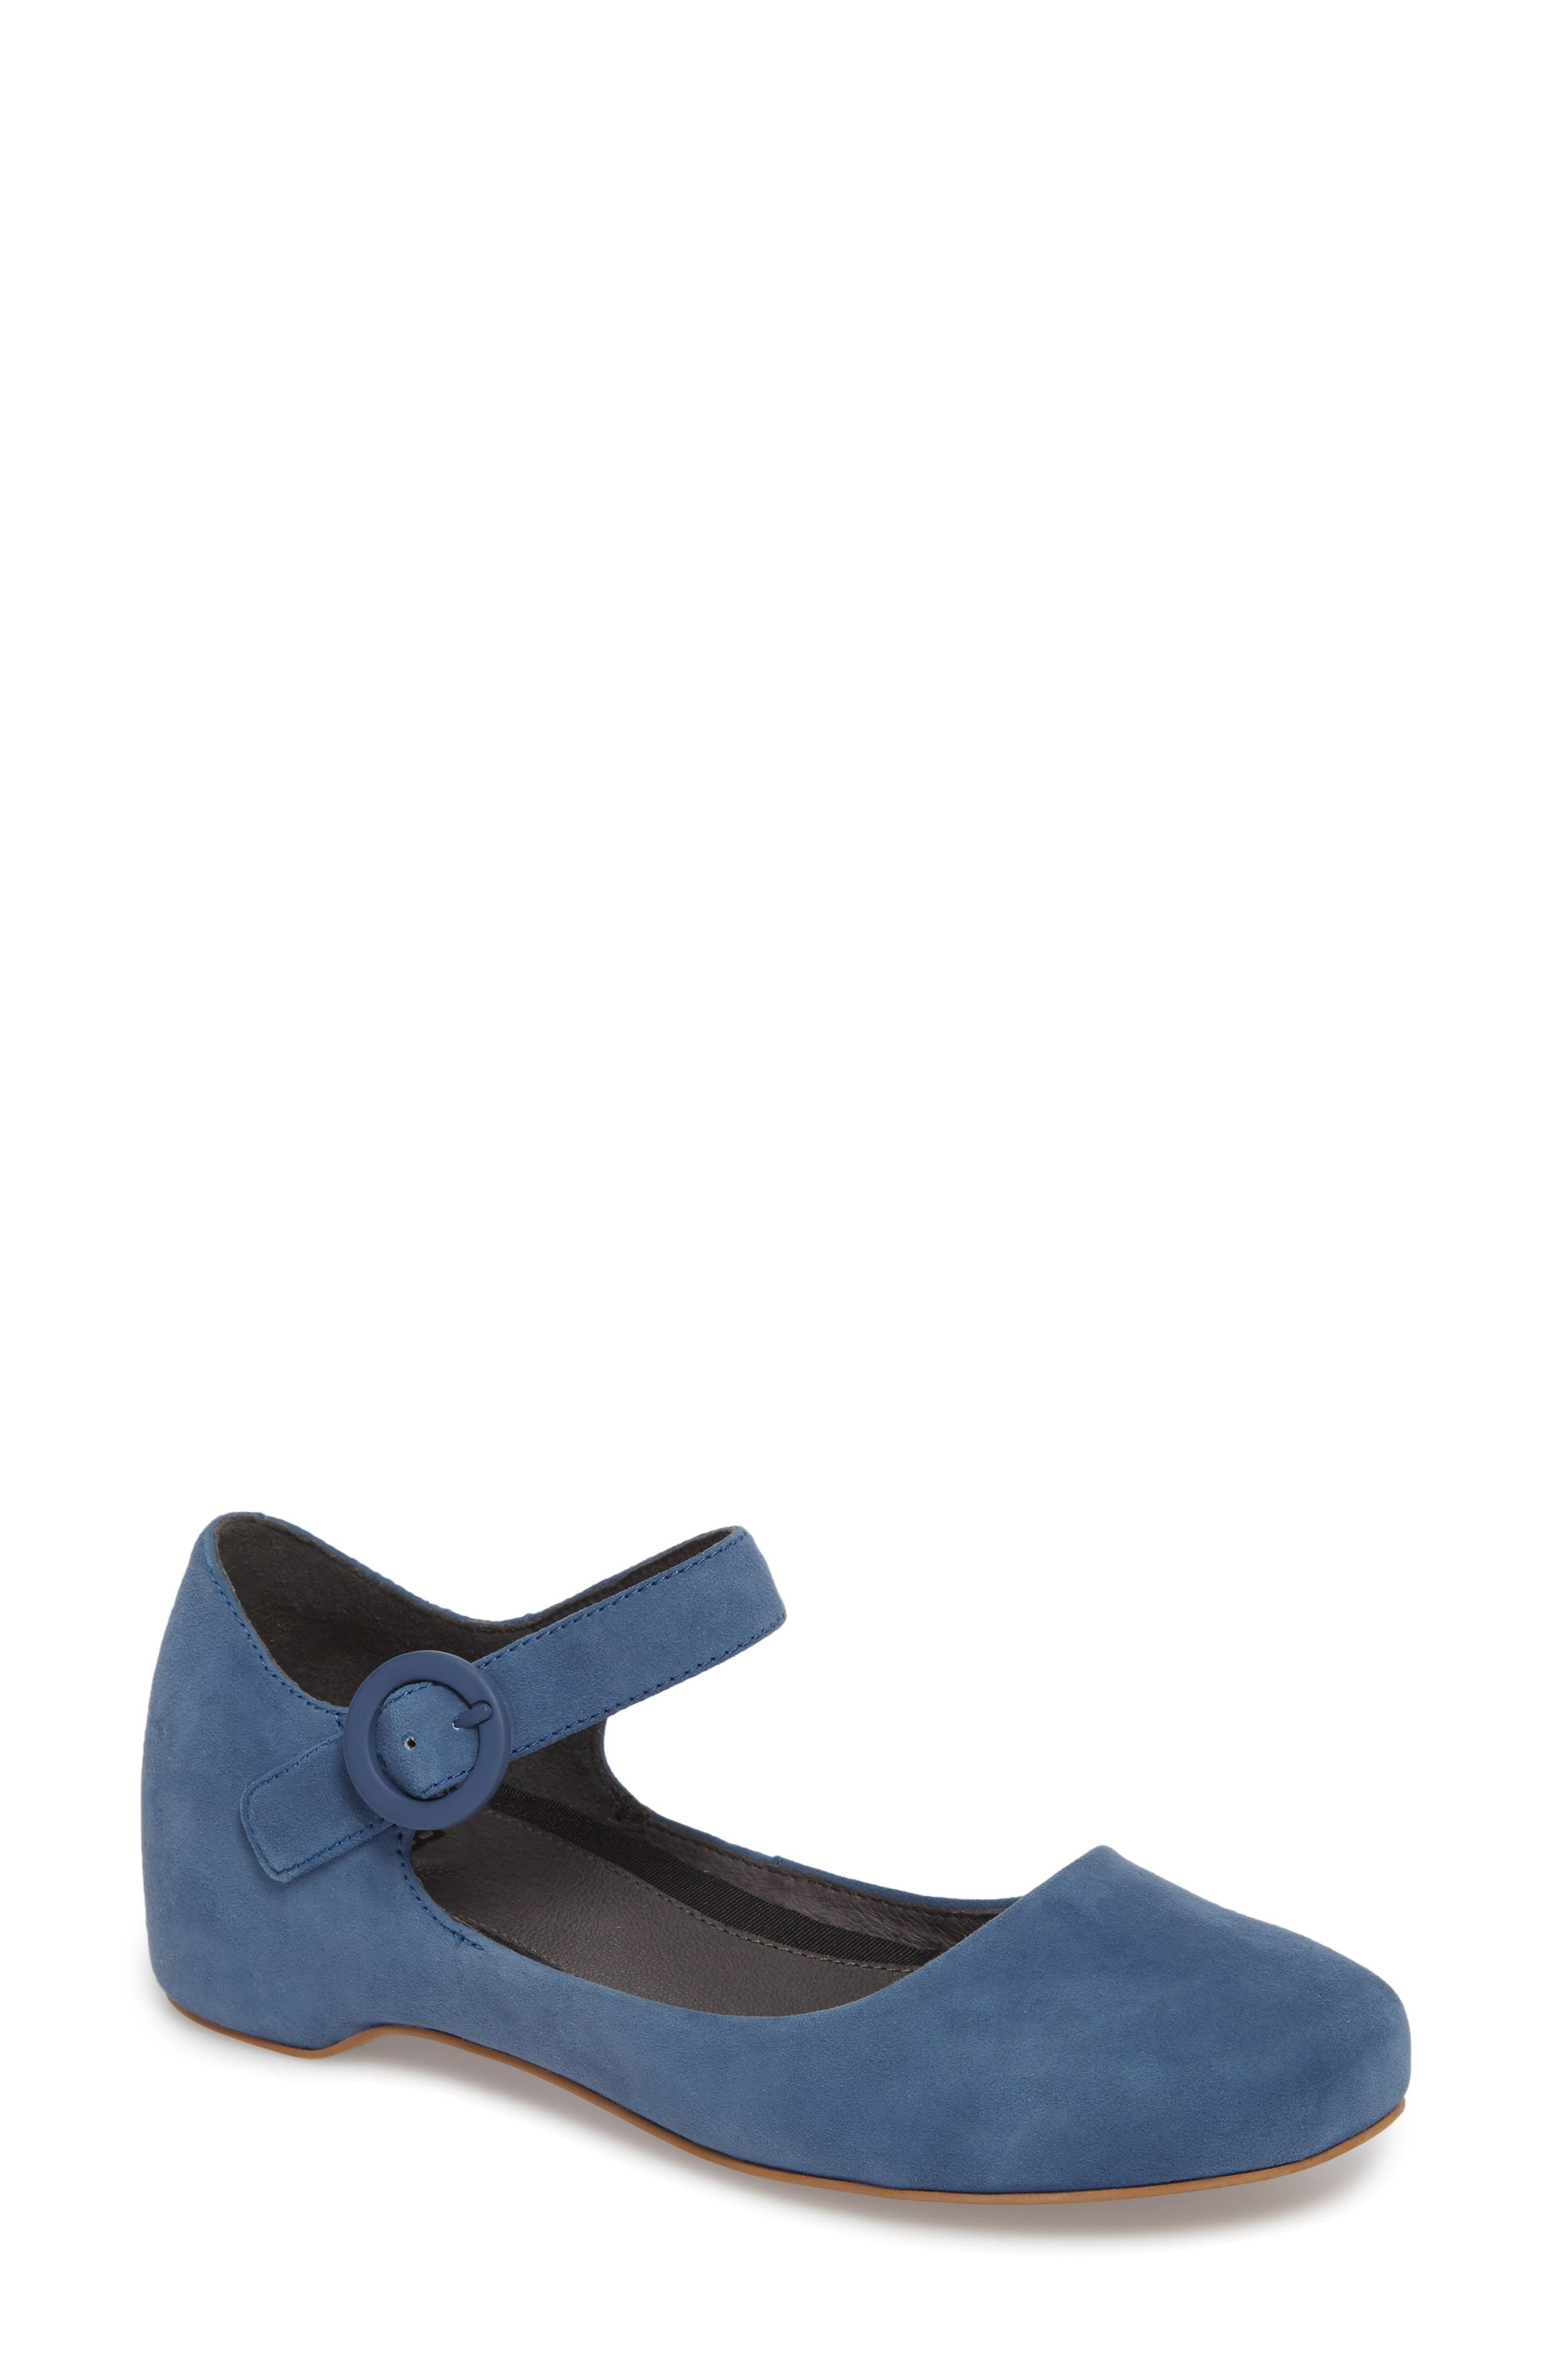 Serena Mary Jane Flat,                         Main,                         color, Bright Blue Suede